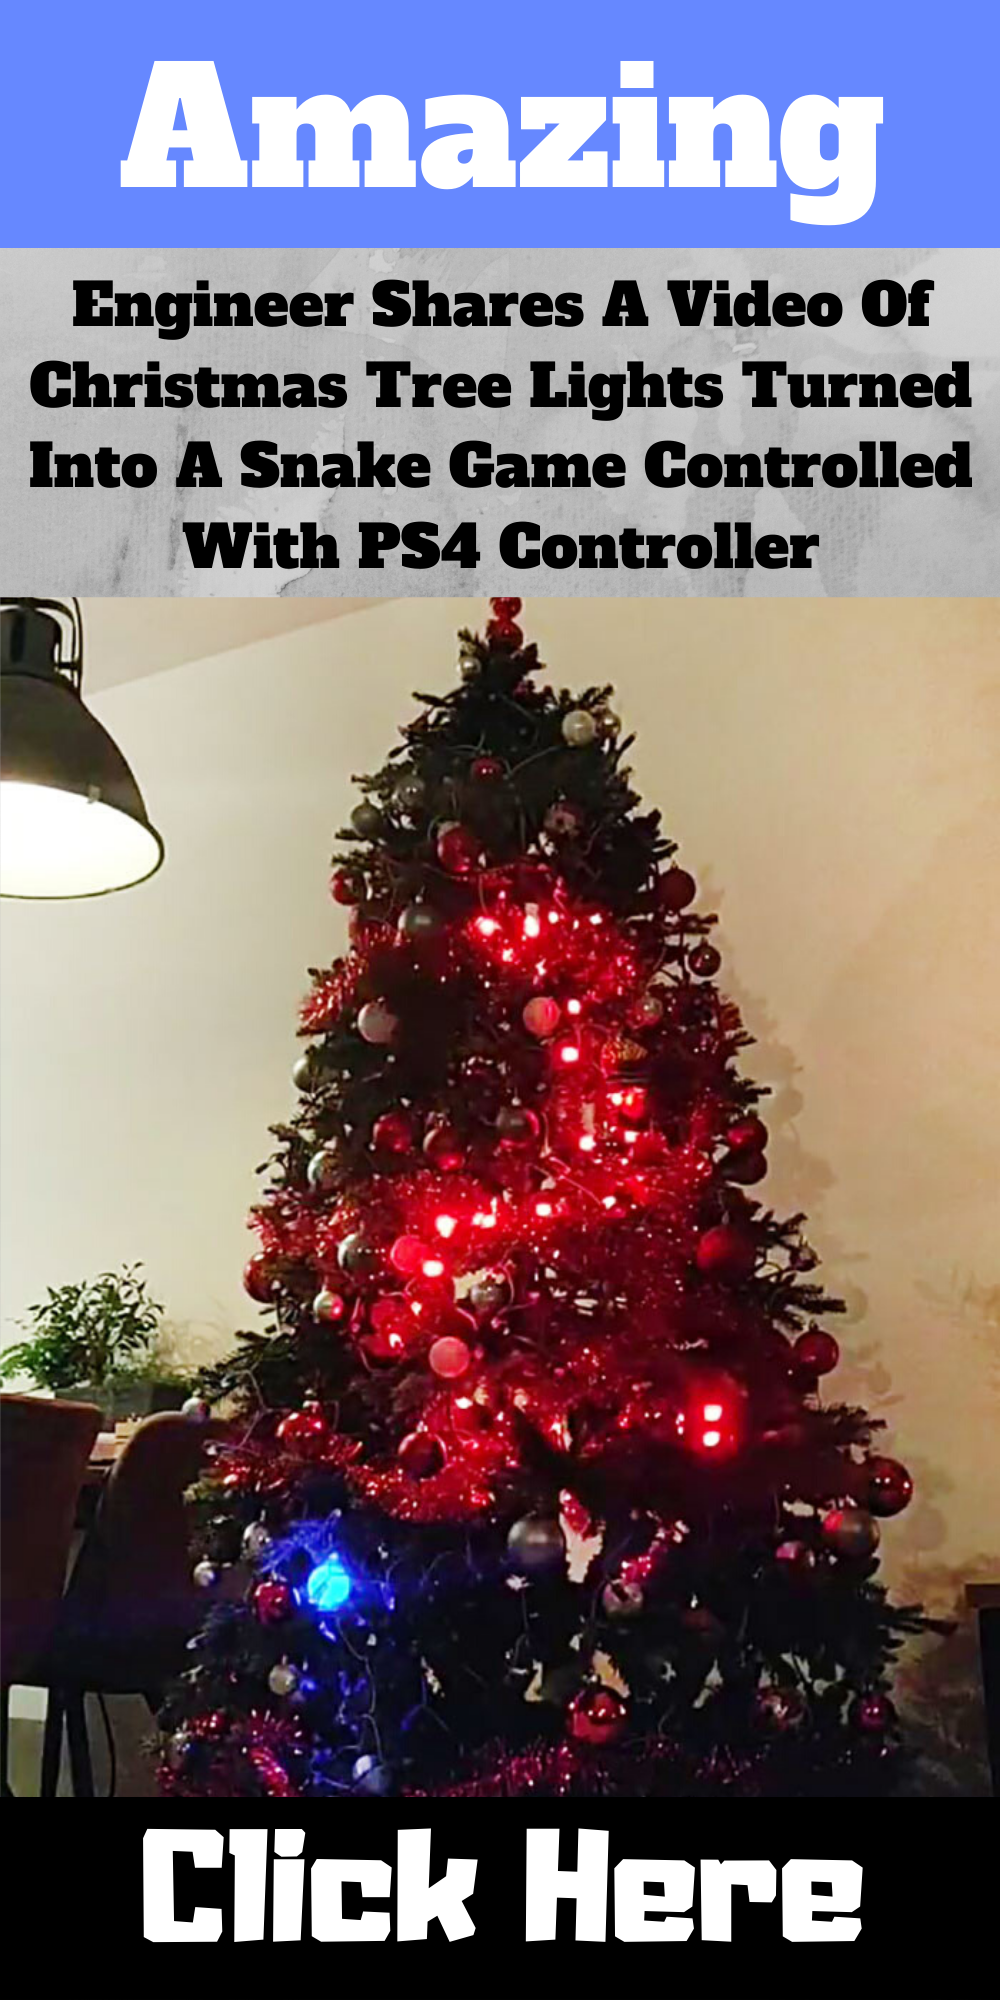 Engineer Shares A Video Of Christmas Tree Lights Turned Into A Snake Game Controlled With Ps4 Controller In 2020 Christmas Tree Images Christmas Tree Lighting Amazing Christmas Trees